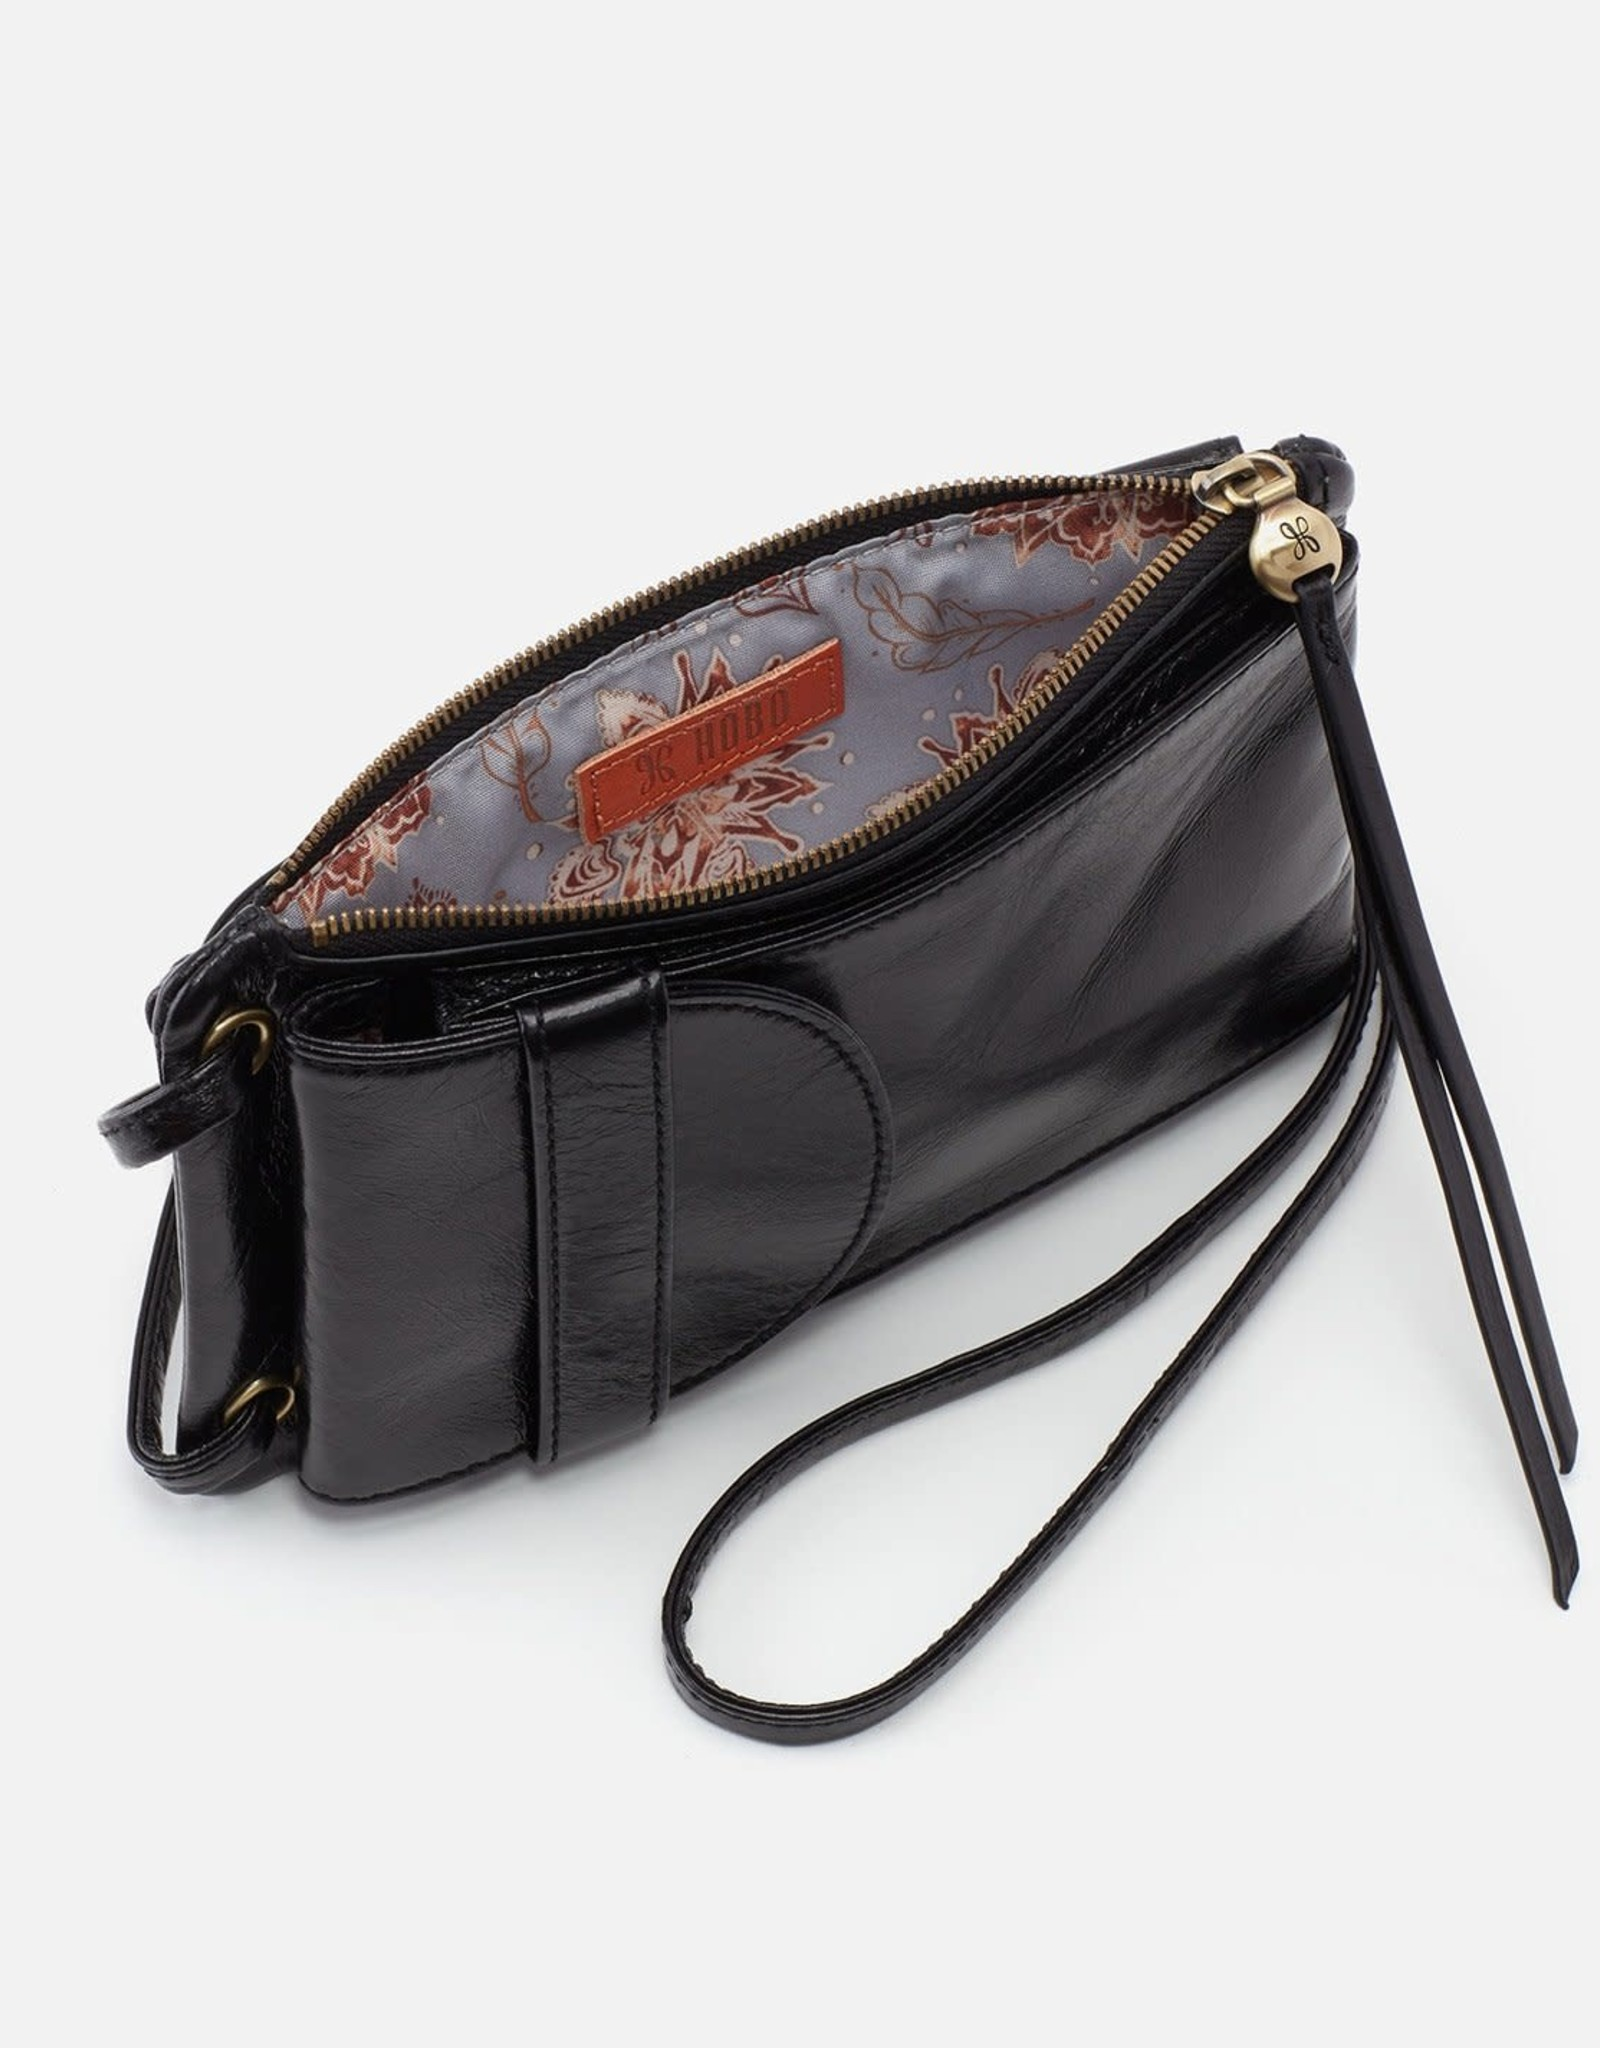 Hobo International Hobo Agile Black